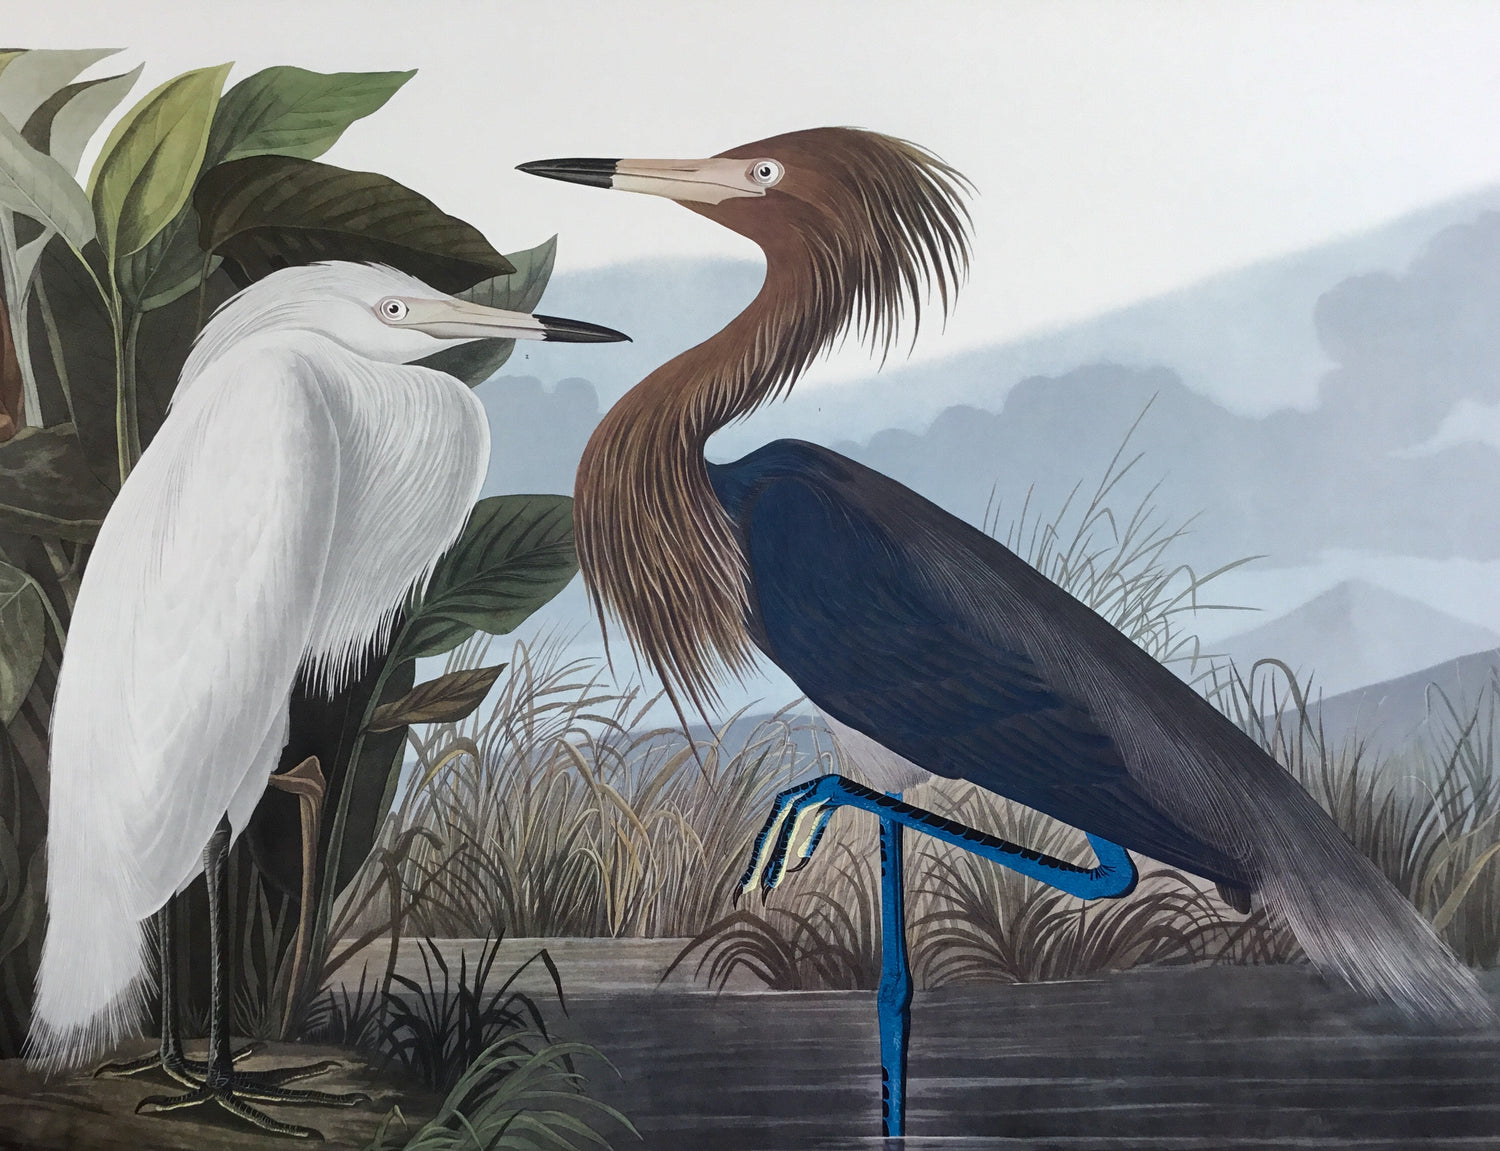 Audubon prints from John James Audubon's Birds of America